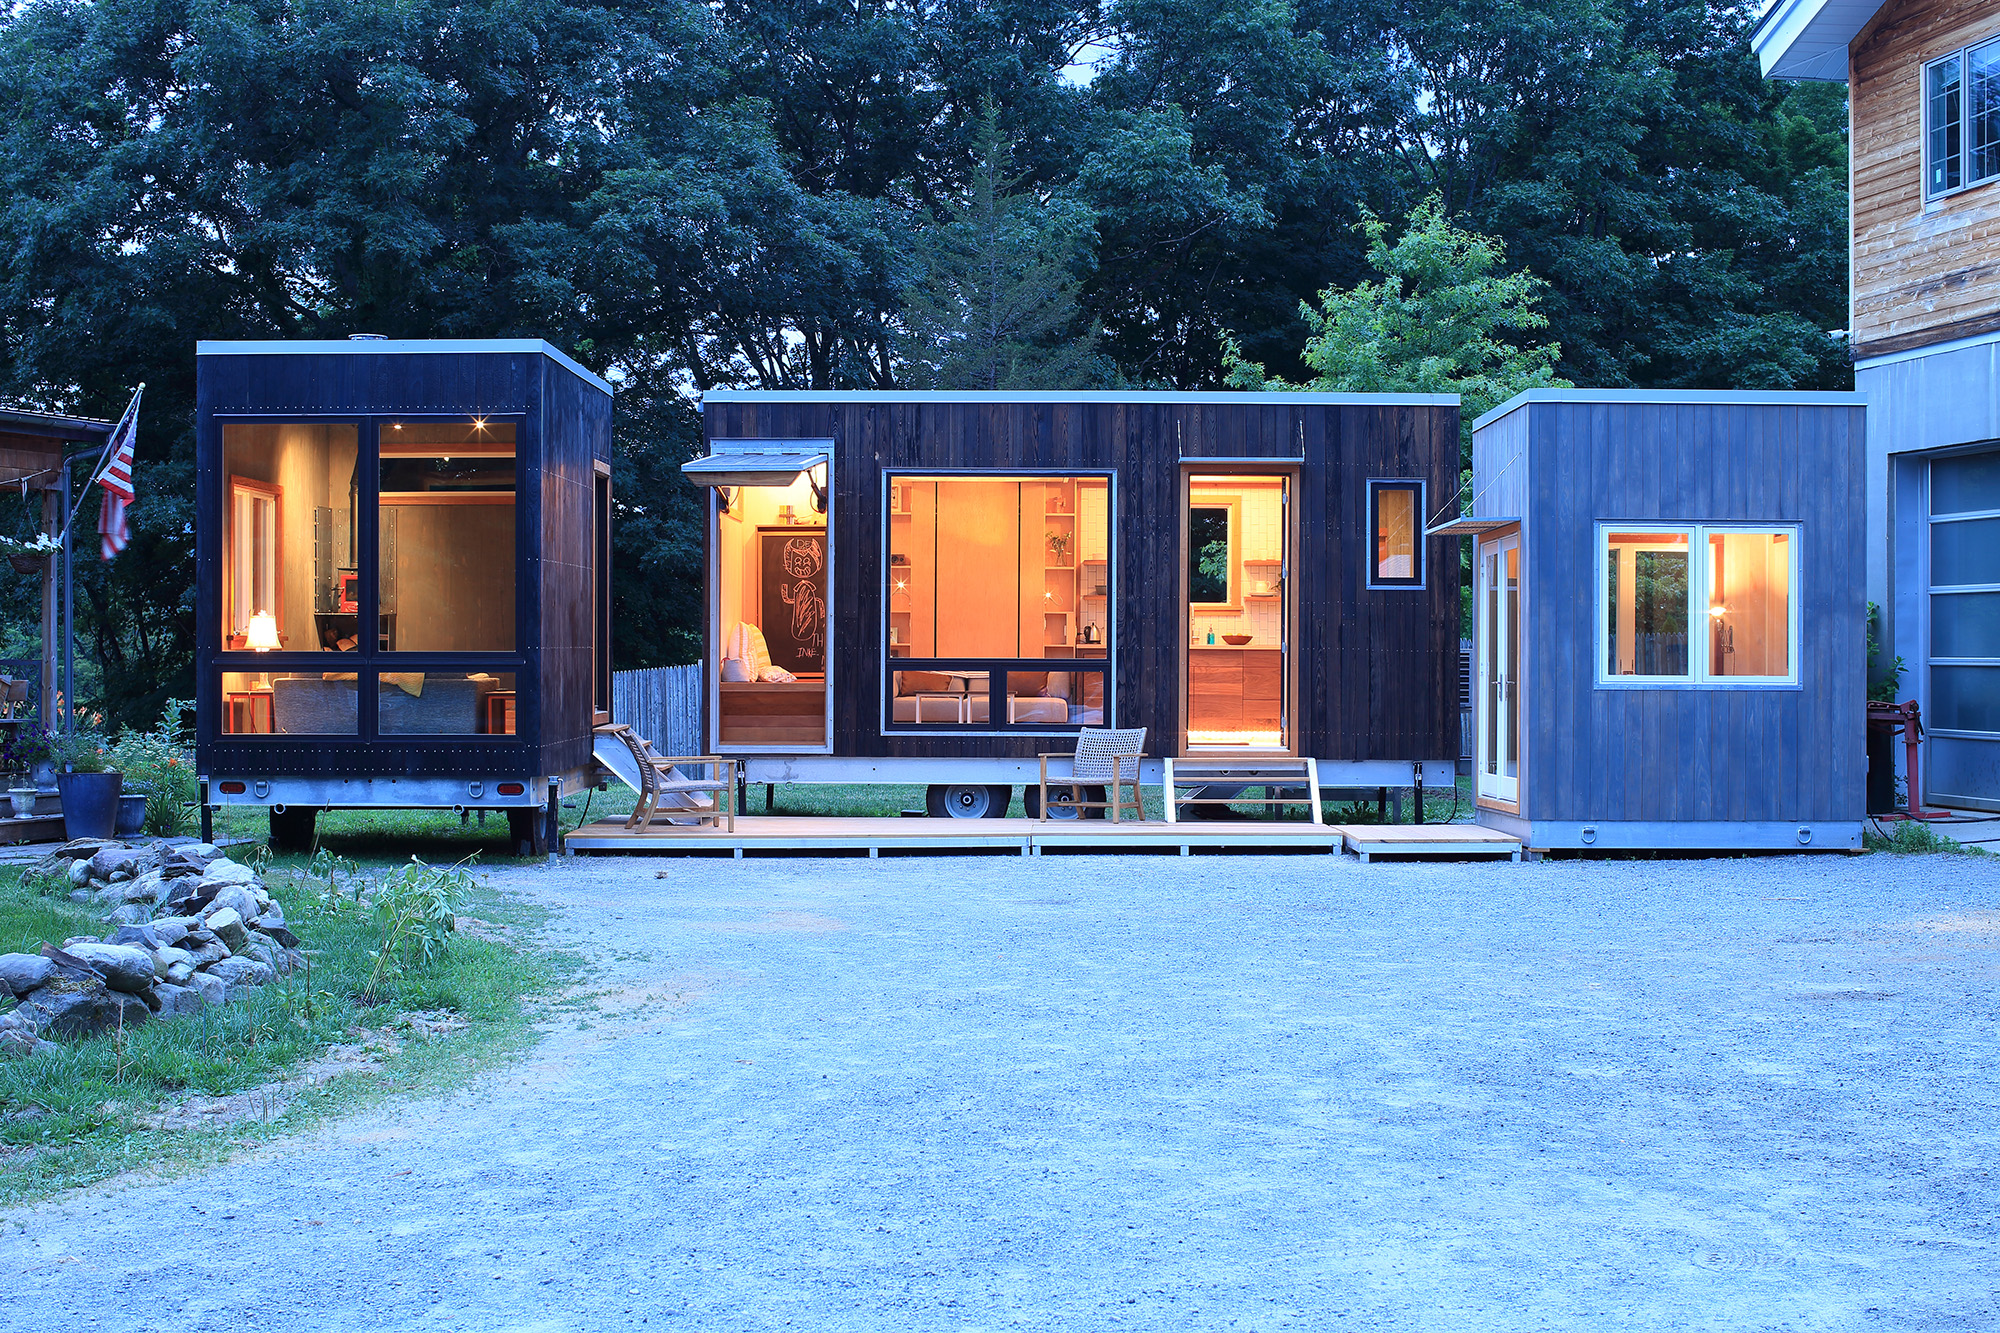 All three available units set up as a compound (L to R): Living room/guest room, Main House with bath/kitchen/bed, and office. Connected by custom decking units. Available for sale individually, but don't they look great all together?